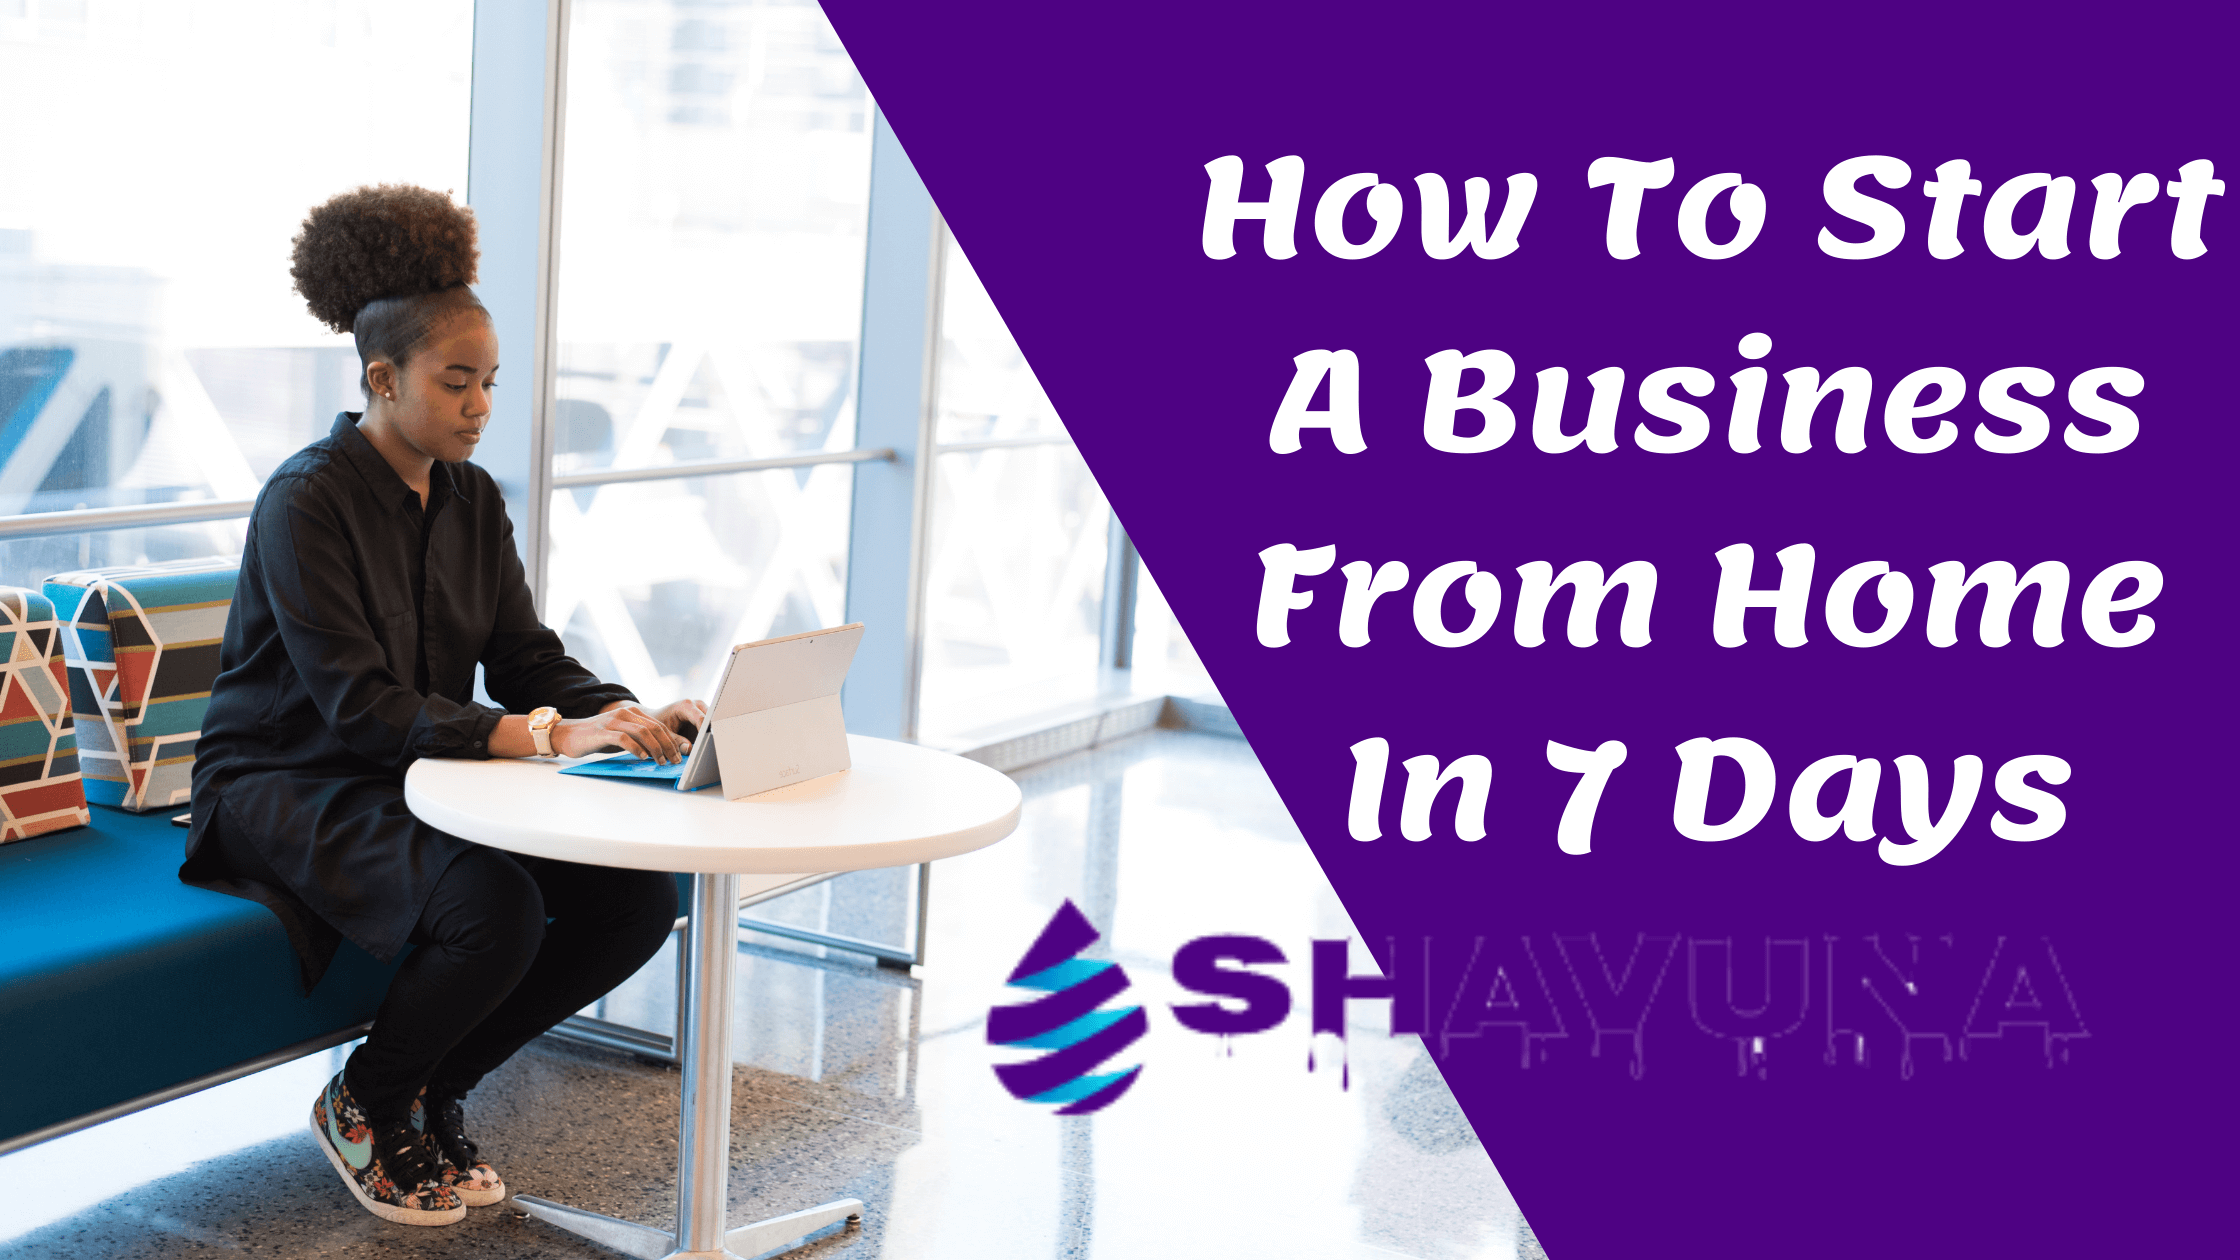 Start A Business From Home In 7 Days